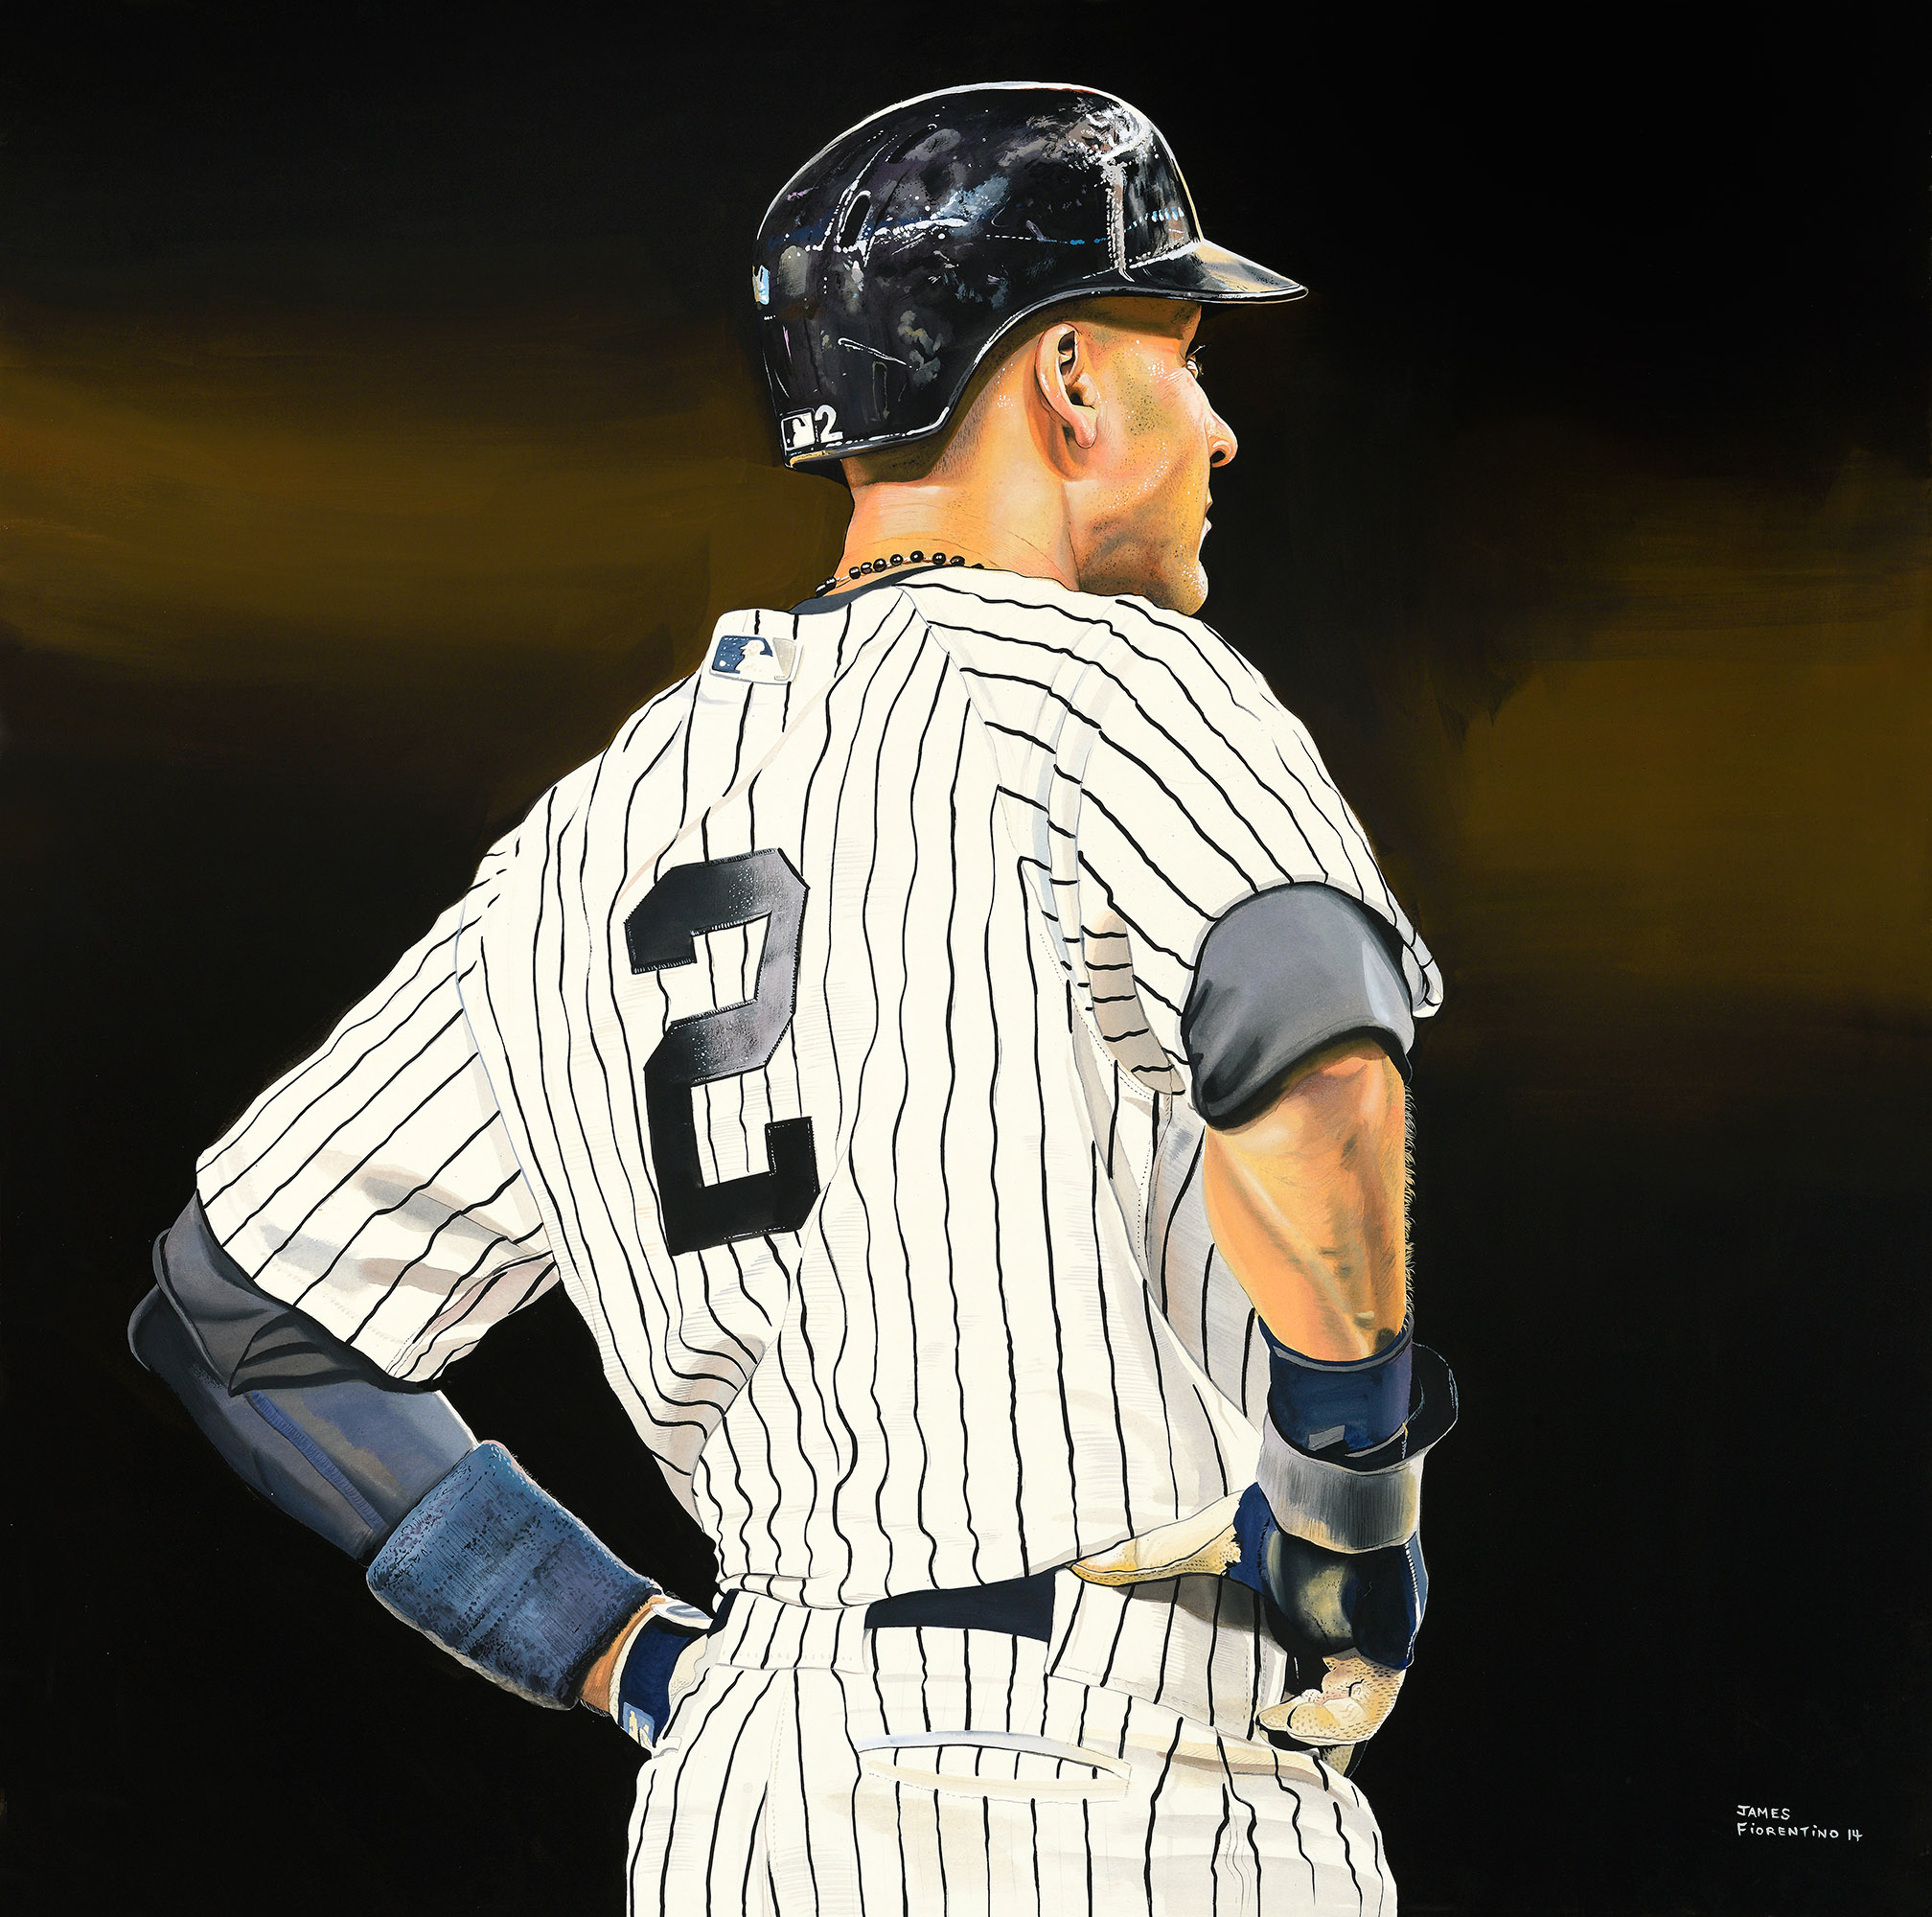 Derek Jeter: Integrity, Pride & Leadership